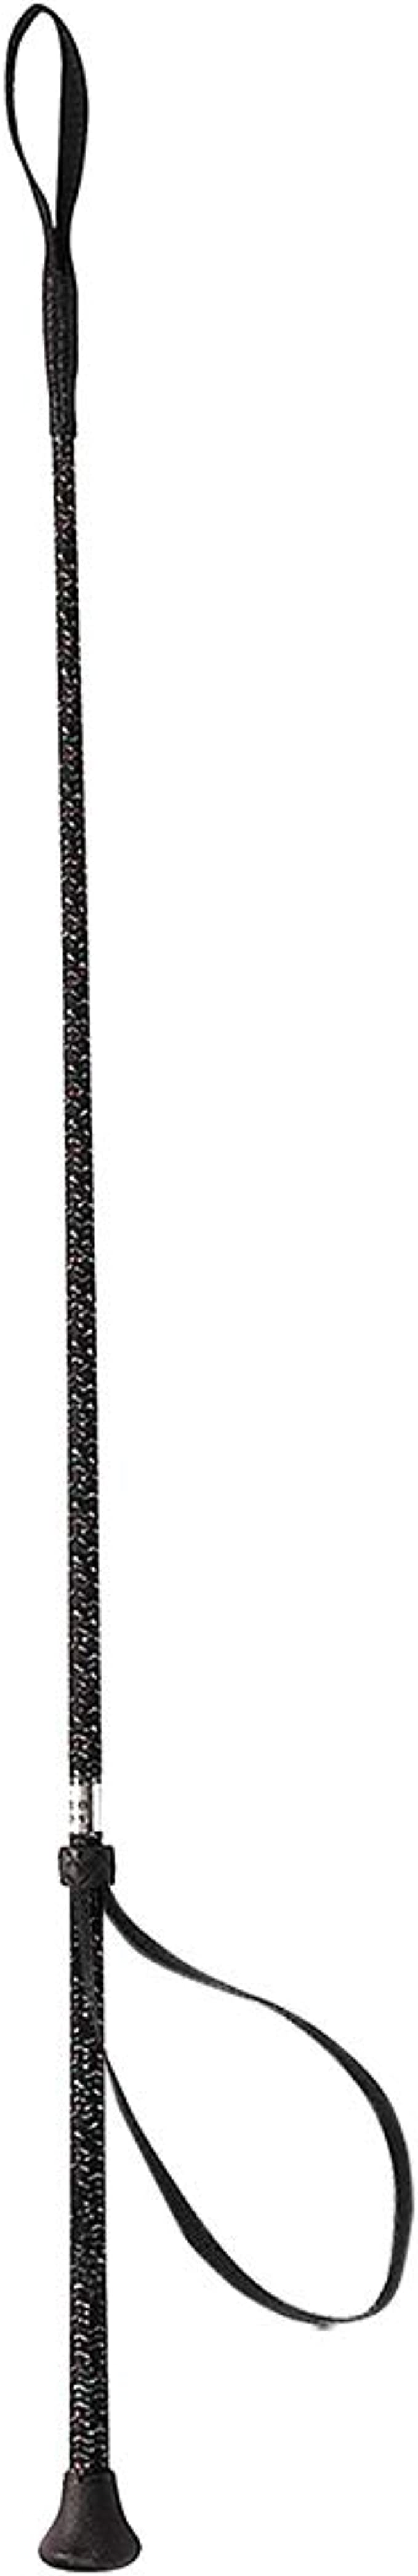 30 inches Black MacTack Childrens Dressage Whip With No Loop